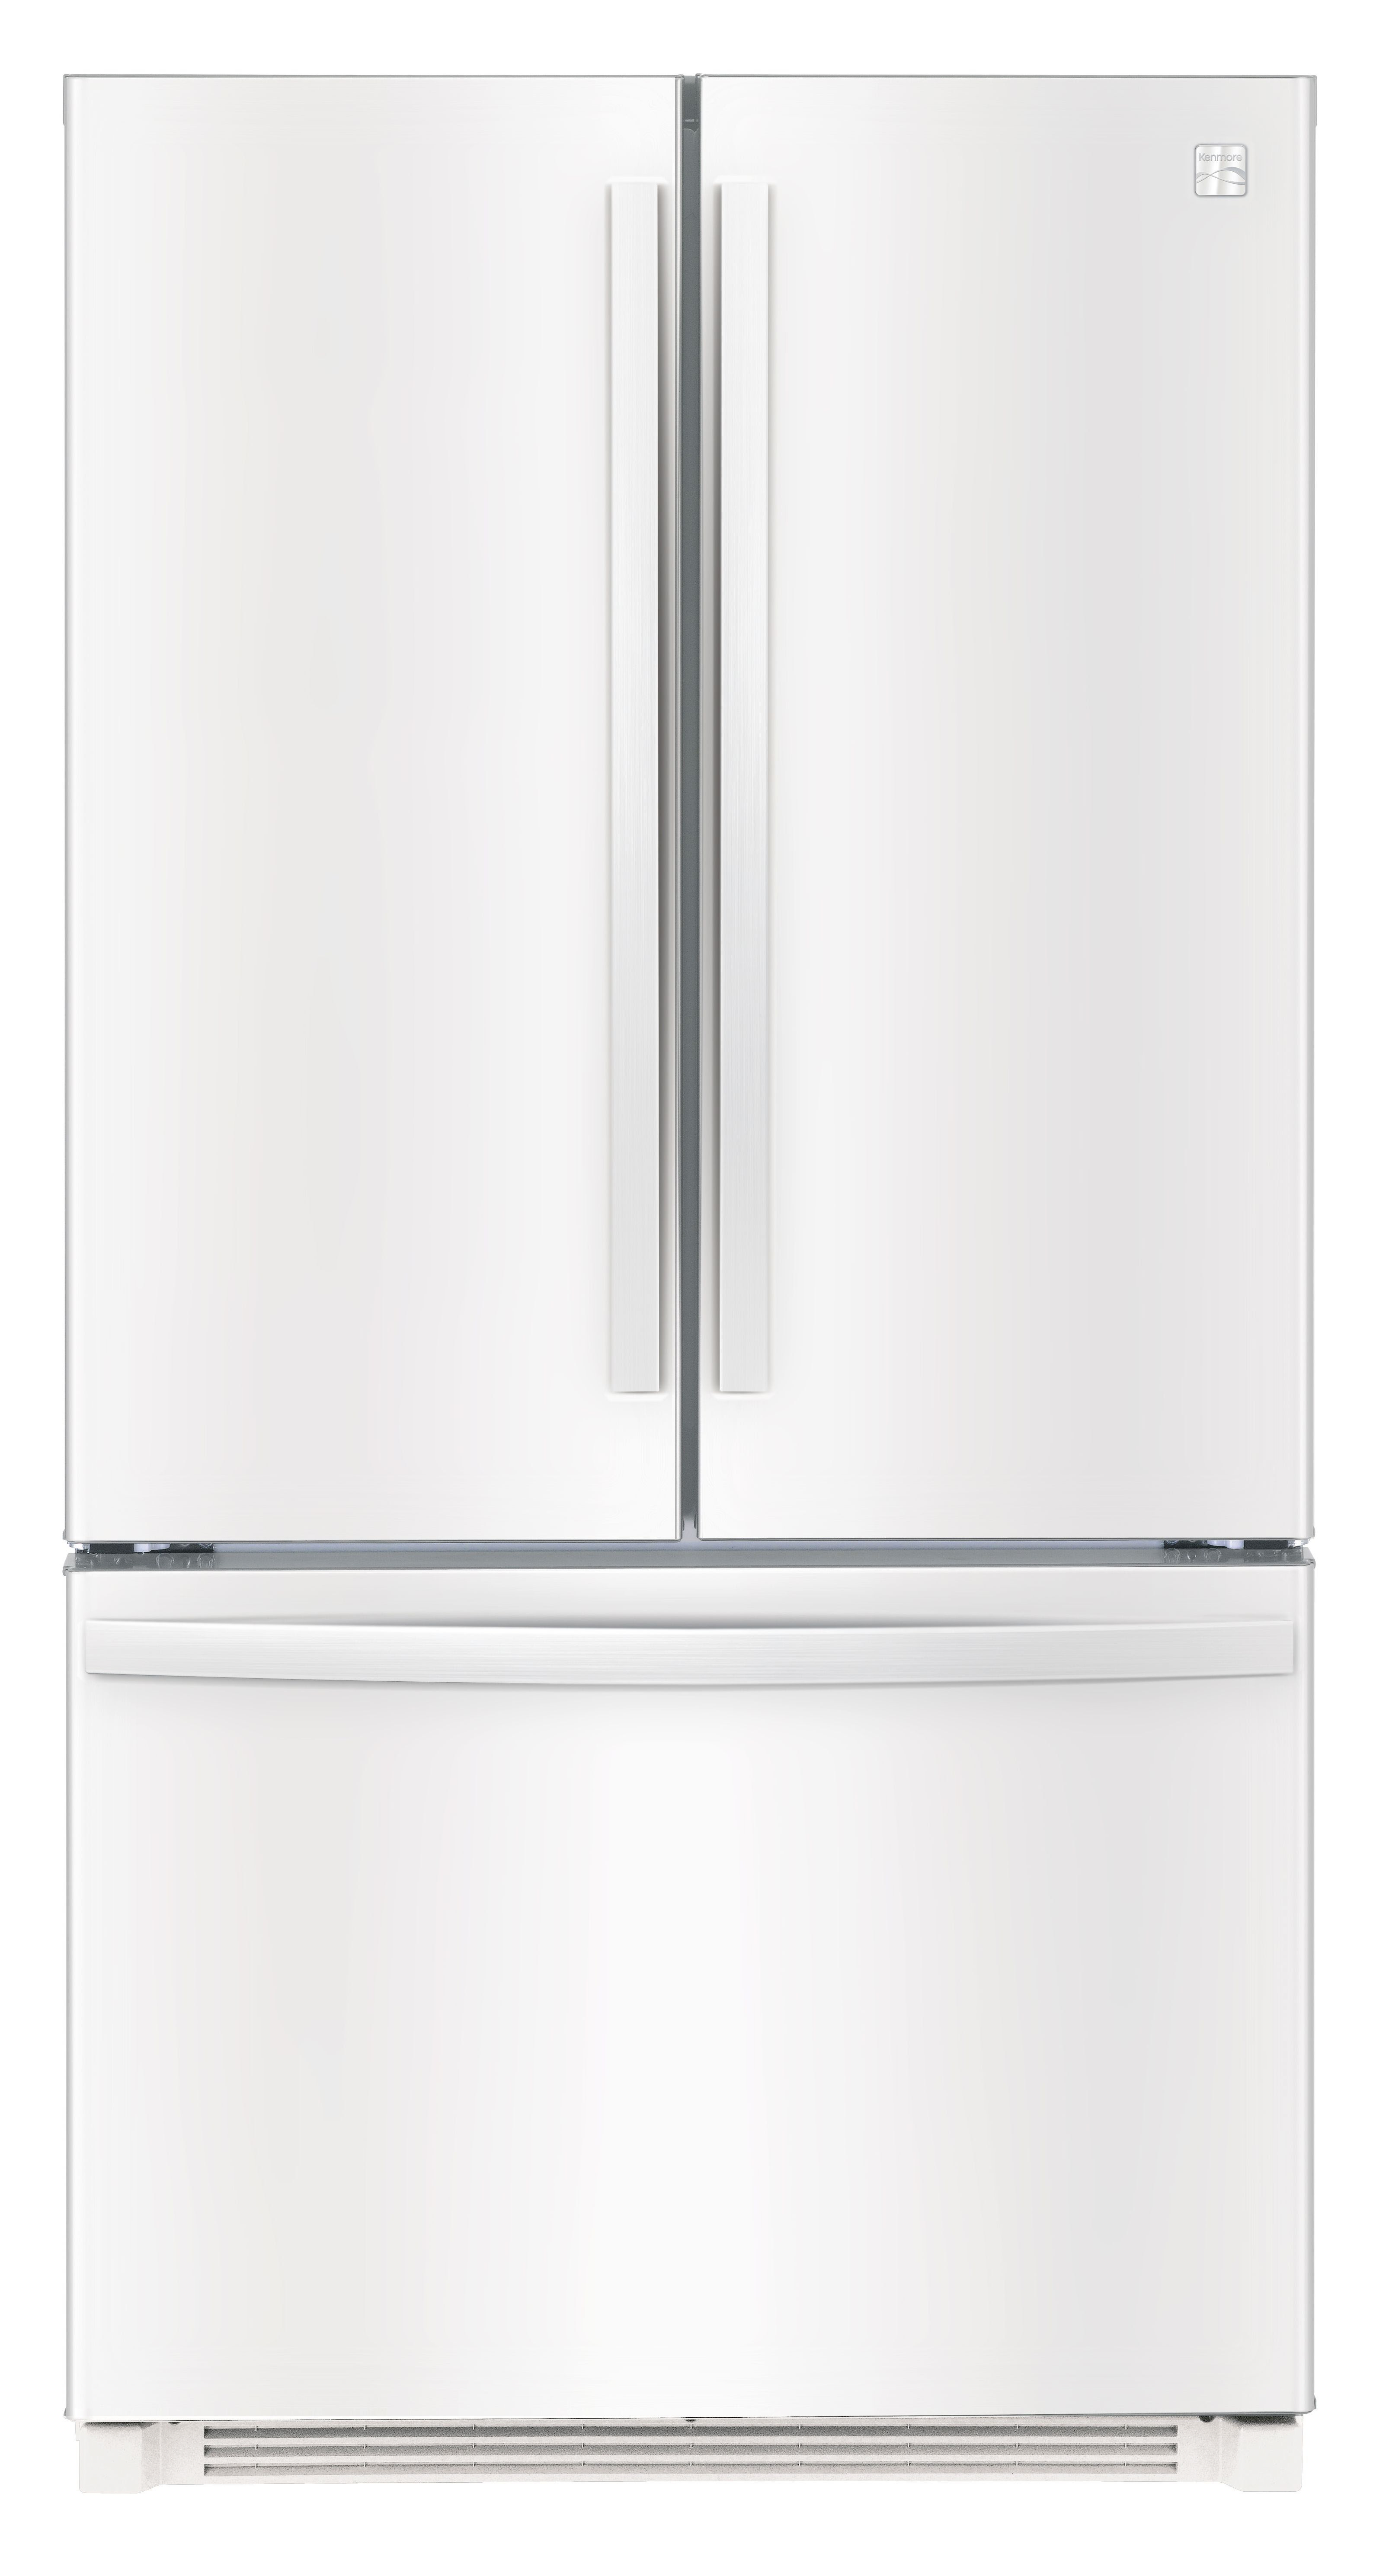 Kenmore 26 1 cu ft French Door Refrigerator – White